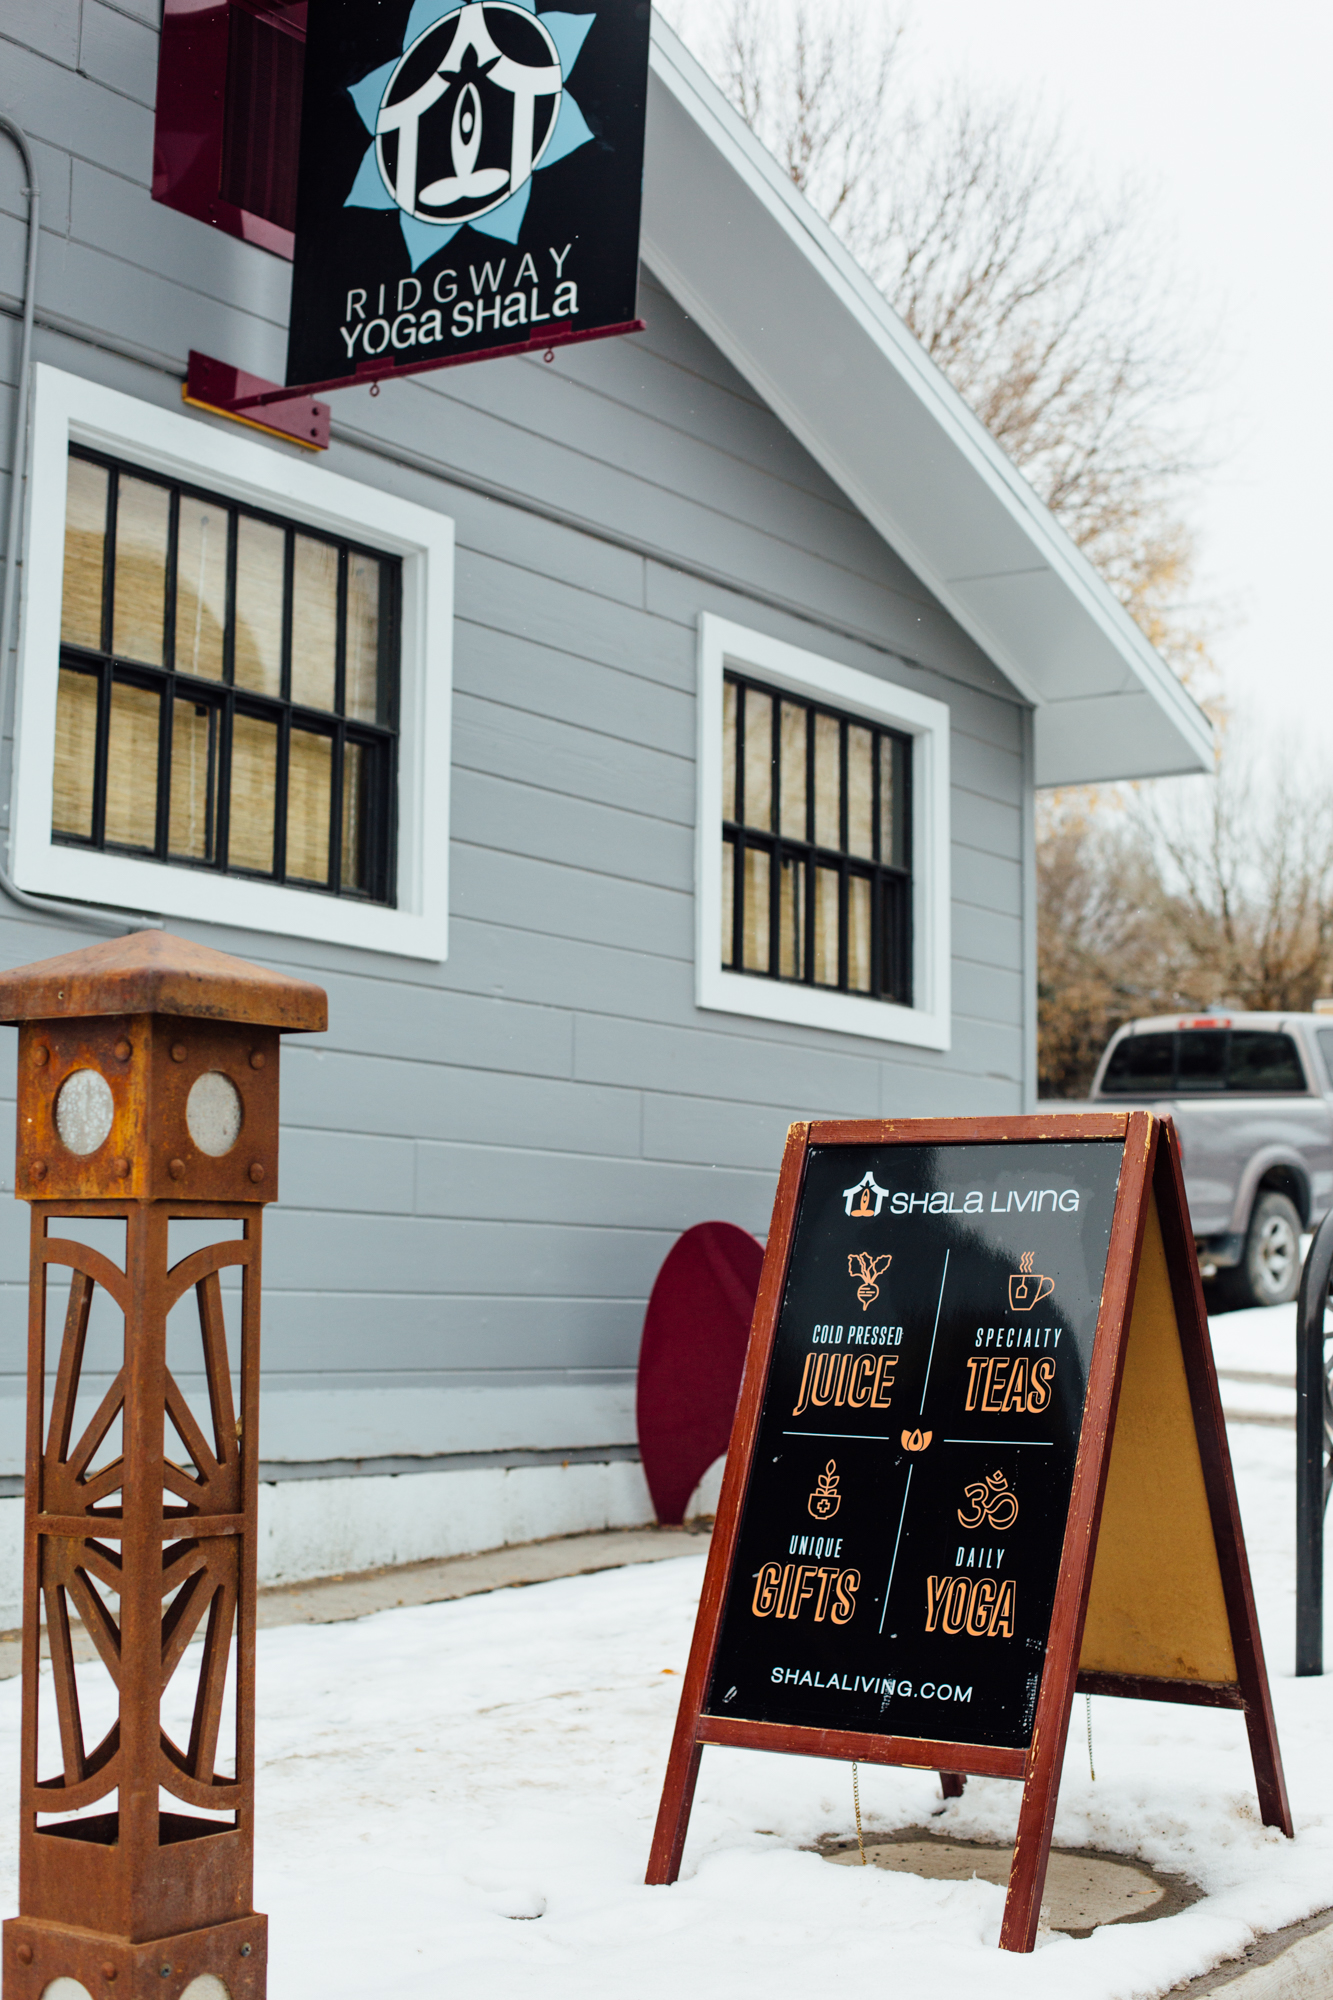 A sandwich board Sitting outside of the Ridgway Yoga Shala with graphics we designed